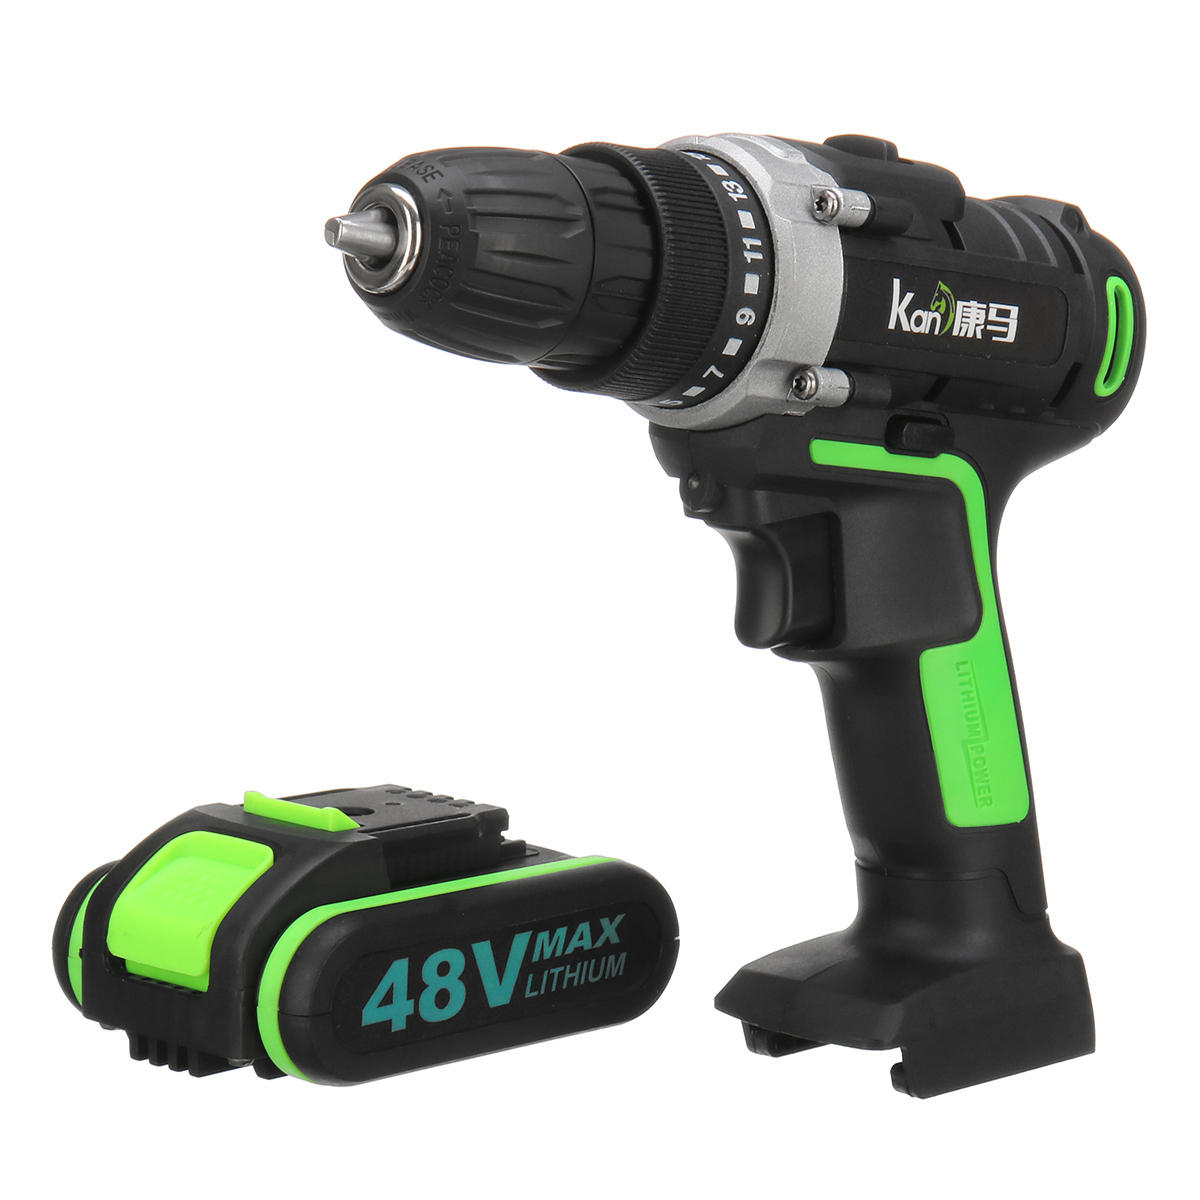 48V 3 In 1 Cordless Power Drills 15+1 Torque Drilling Tool Dual Speed Electric Screwdriver Drill W/ 1 or 2 Li-ion Battery - 5